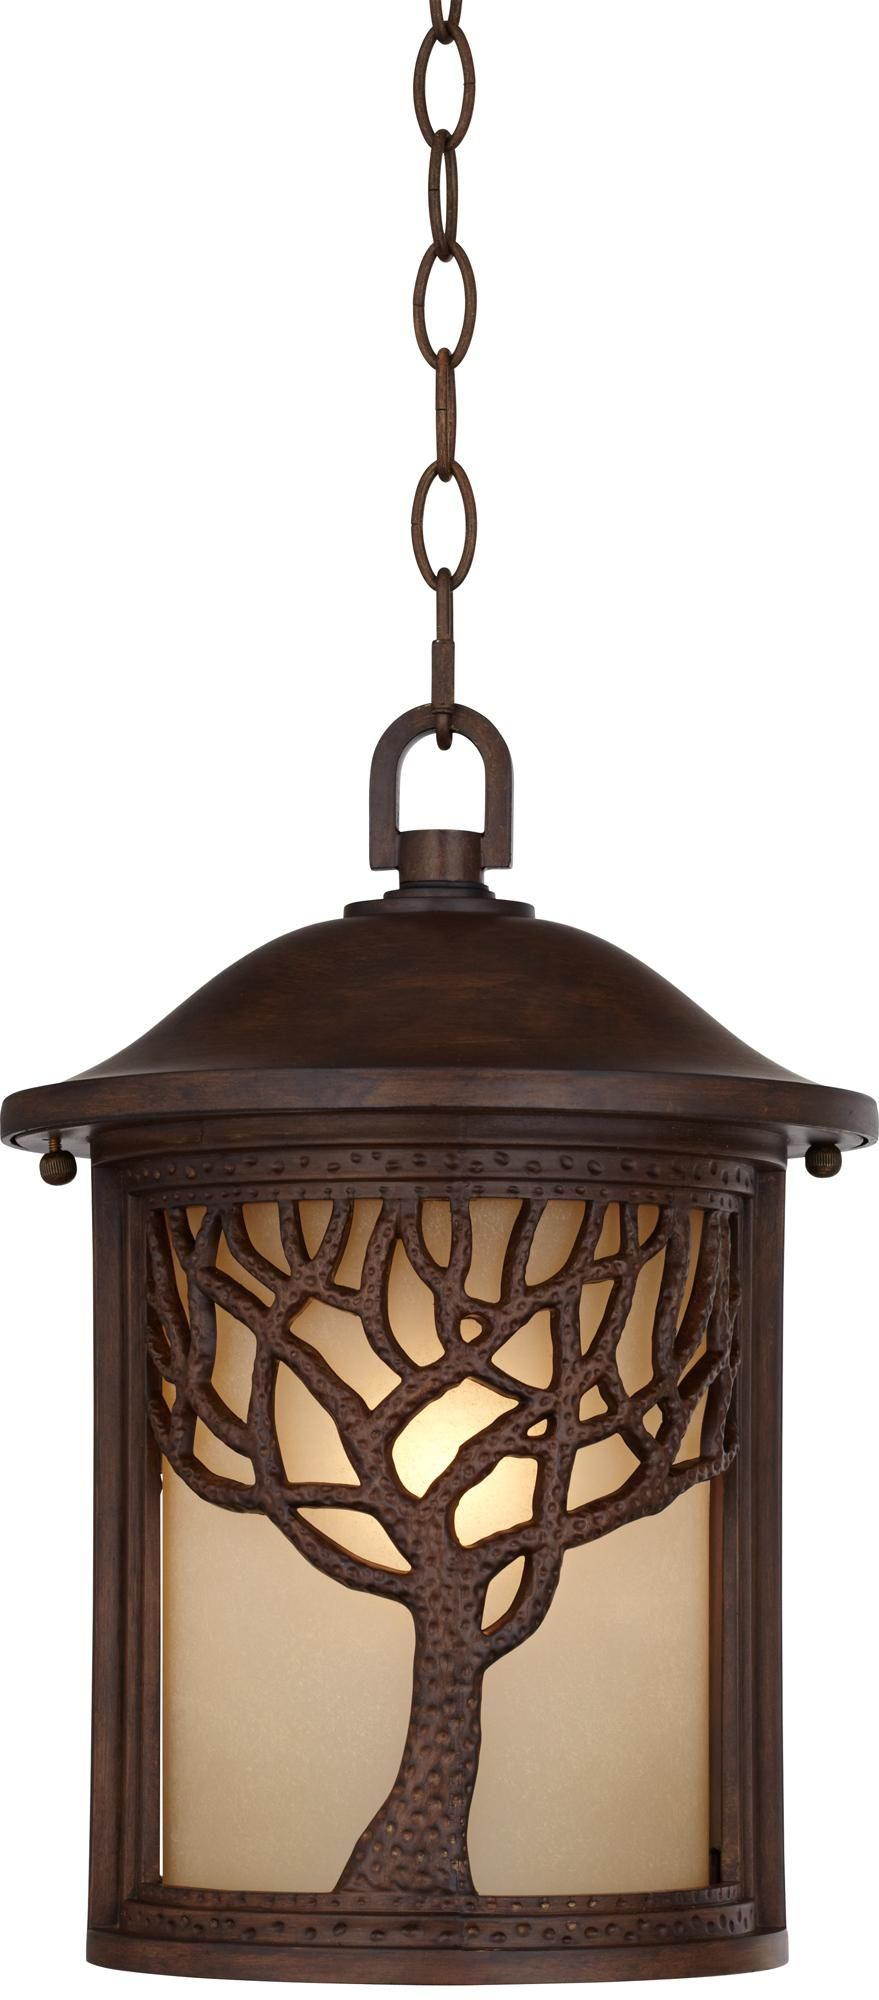 Bronze Mission Style Tree 10 High Outdoor Hanging Light W8310 Lamps Plus Outdoor Hanging Lights Light Mission Style